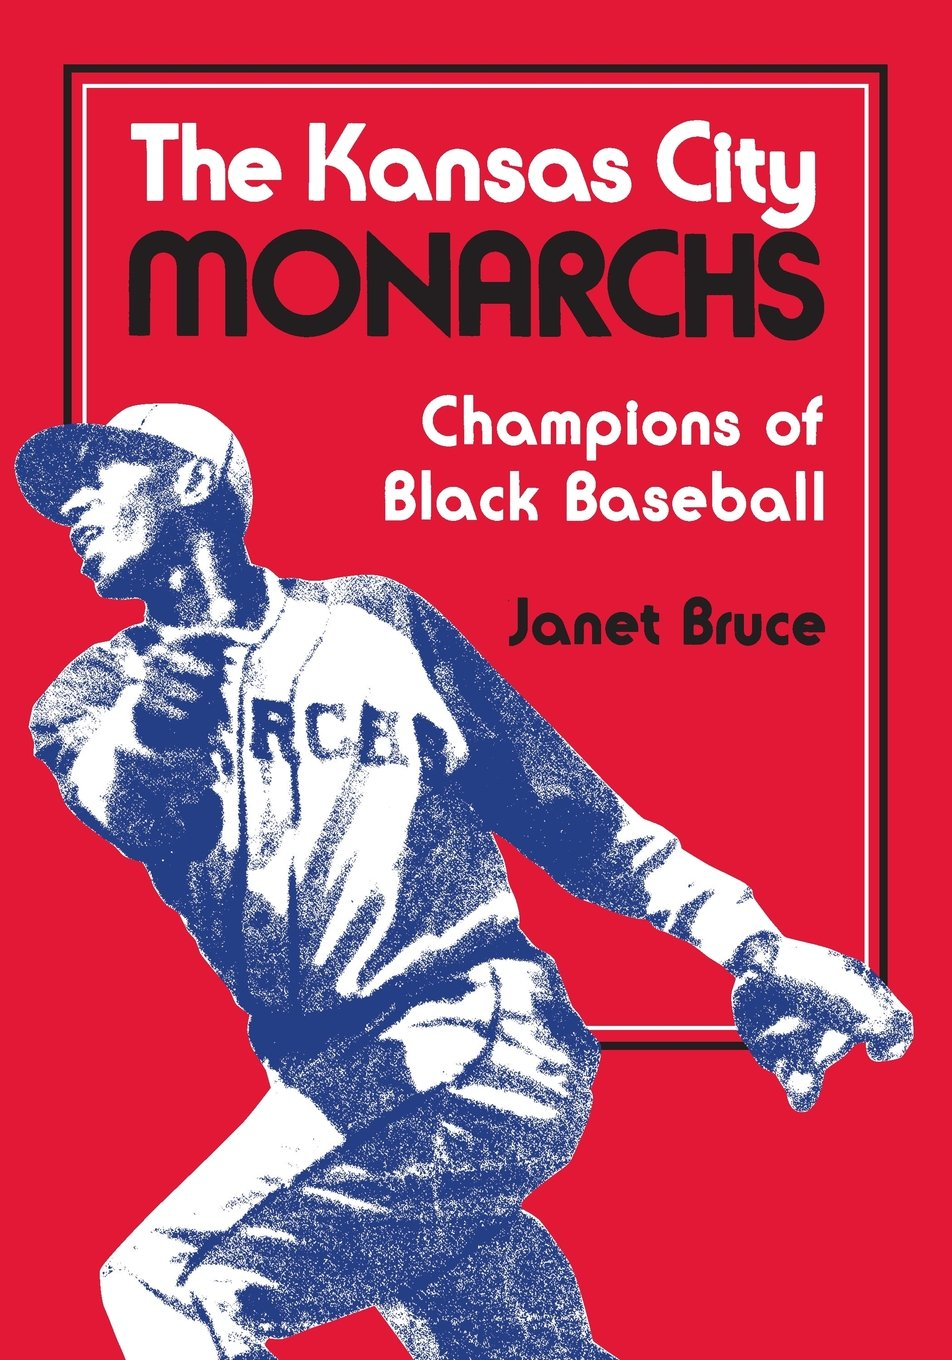 The Kansas City Monarchs: Champions of Black Baseball-click the link for more information about this book by Janet Bruce